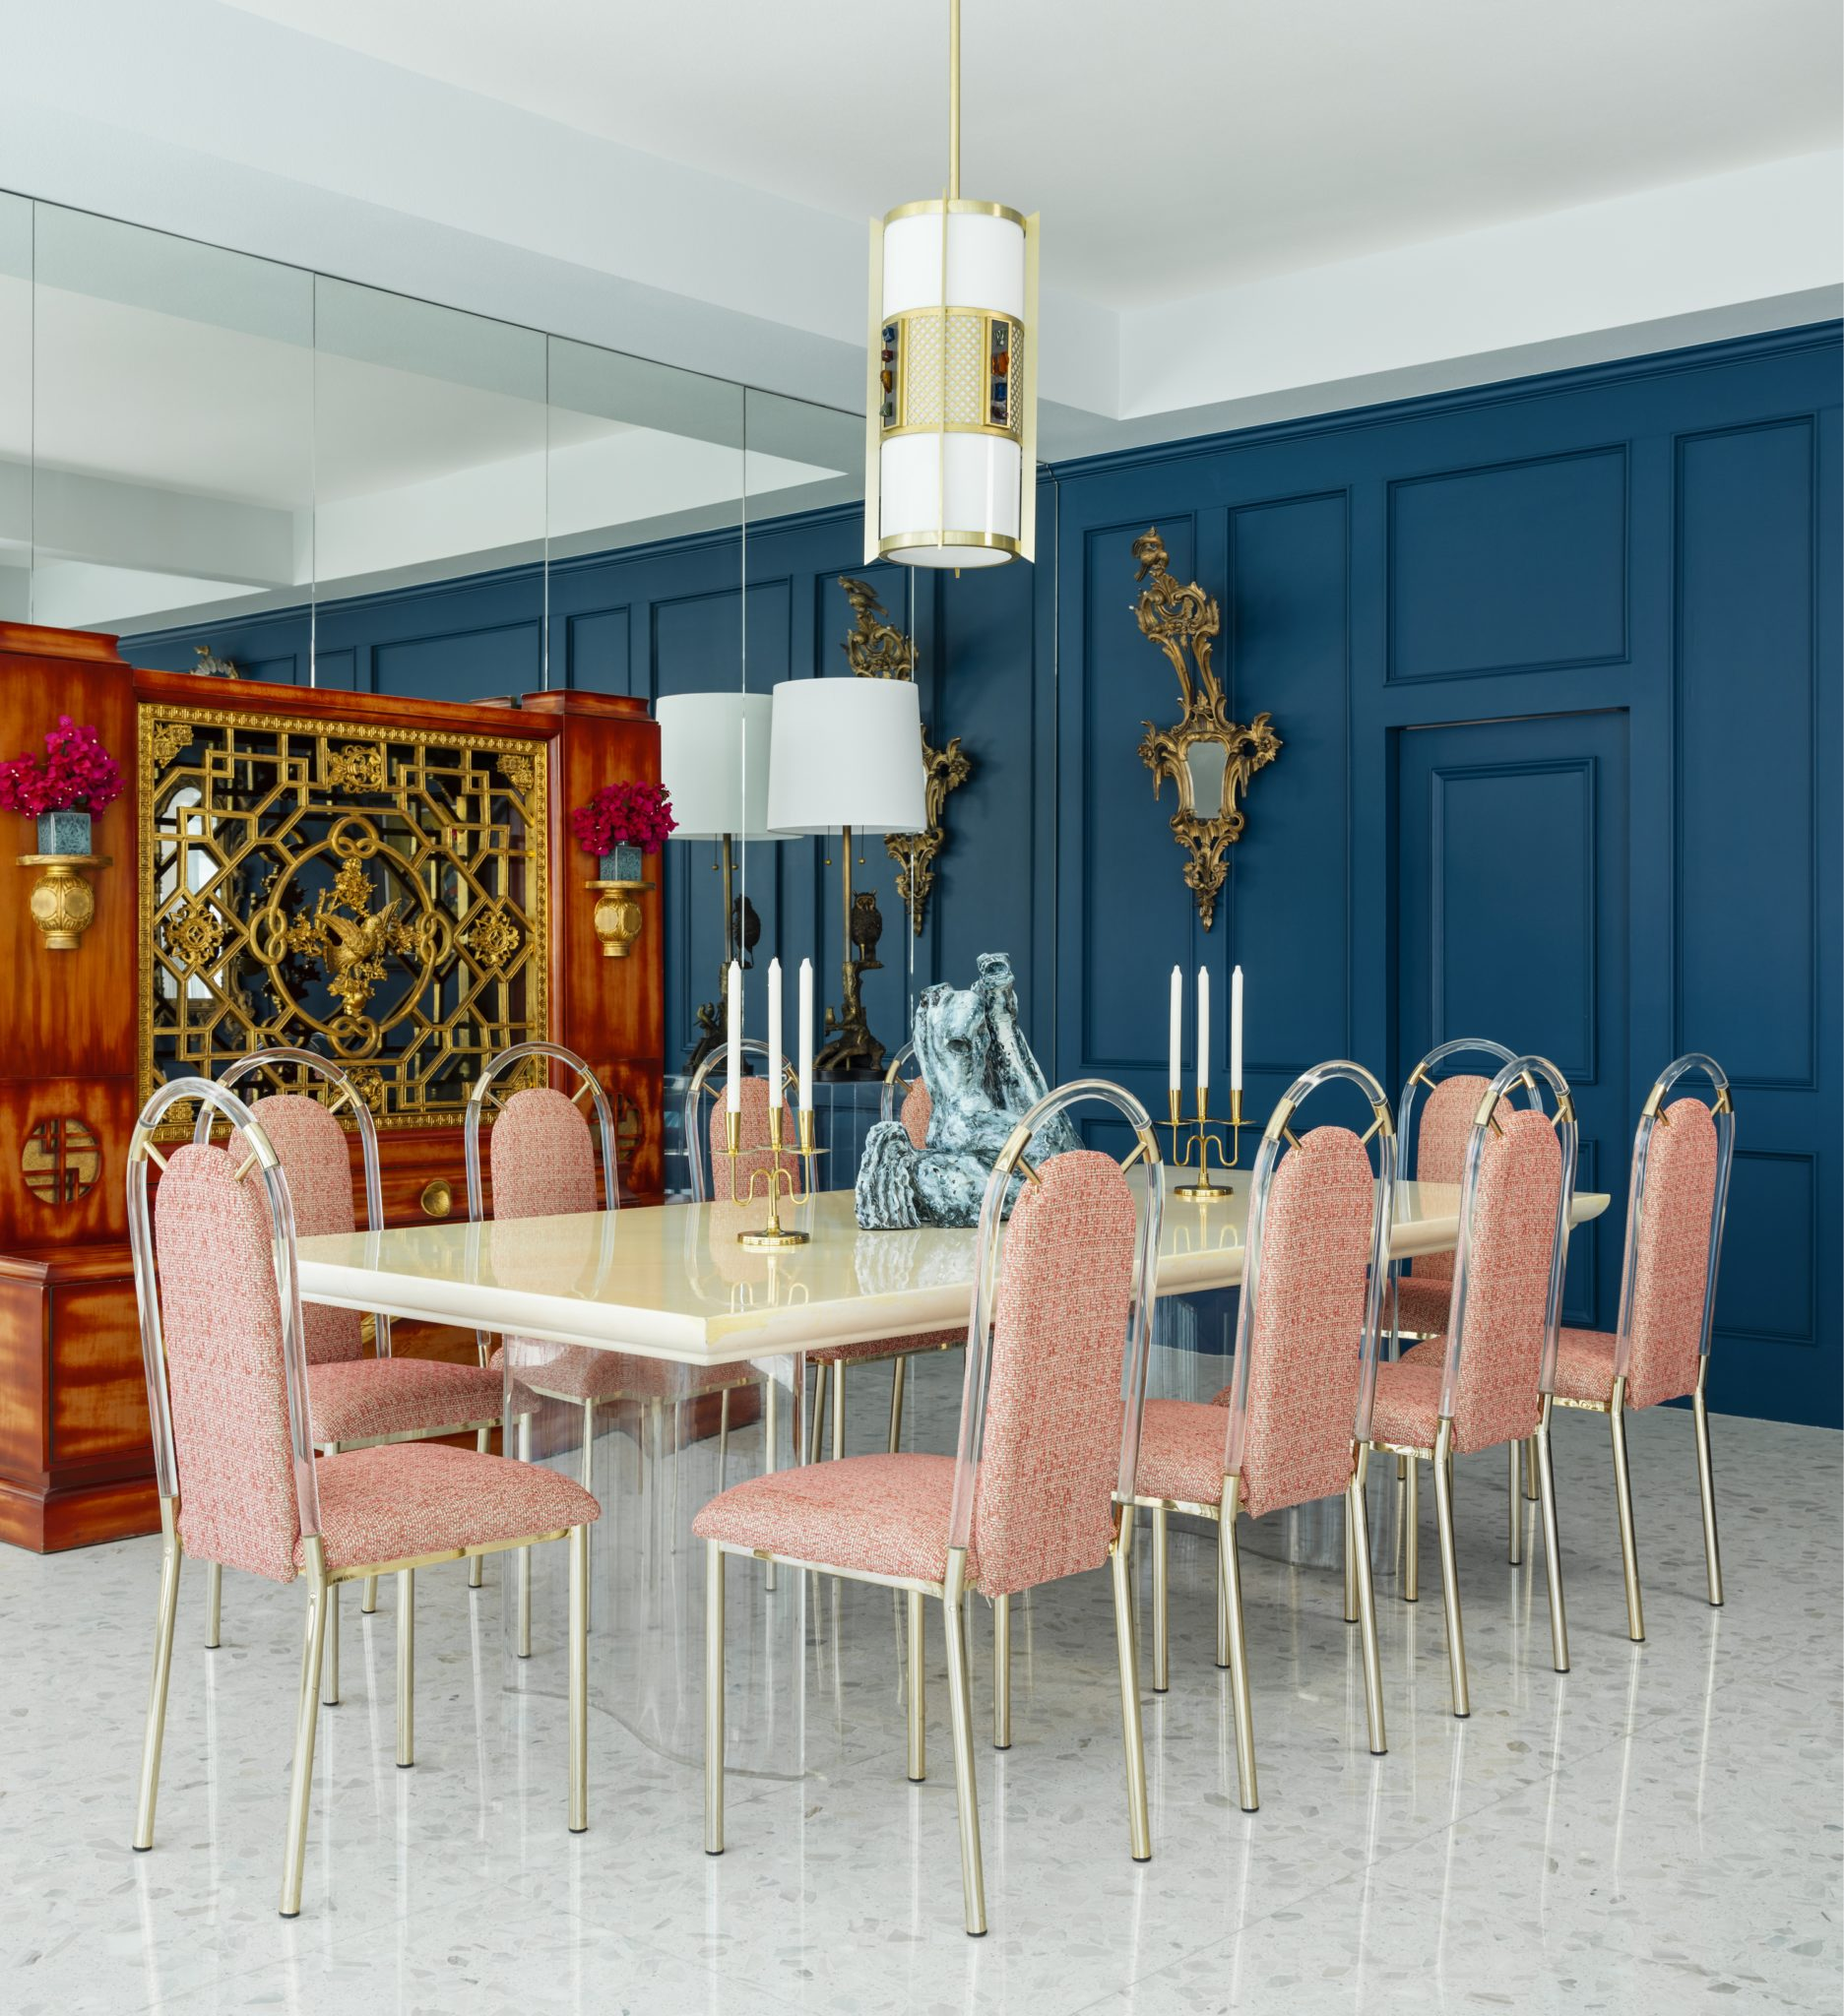 San Simeonita Dining Room in palm Springs by Anthony Cochran Design